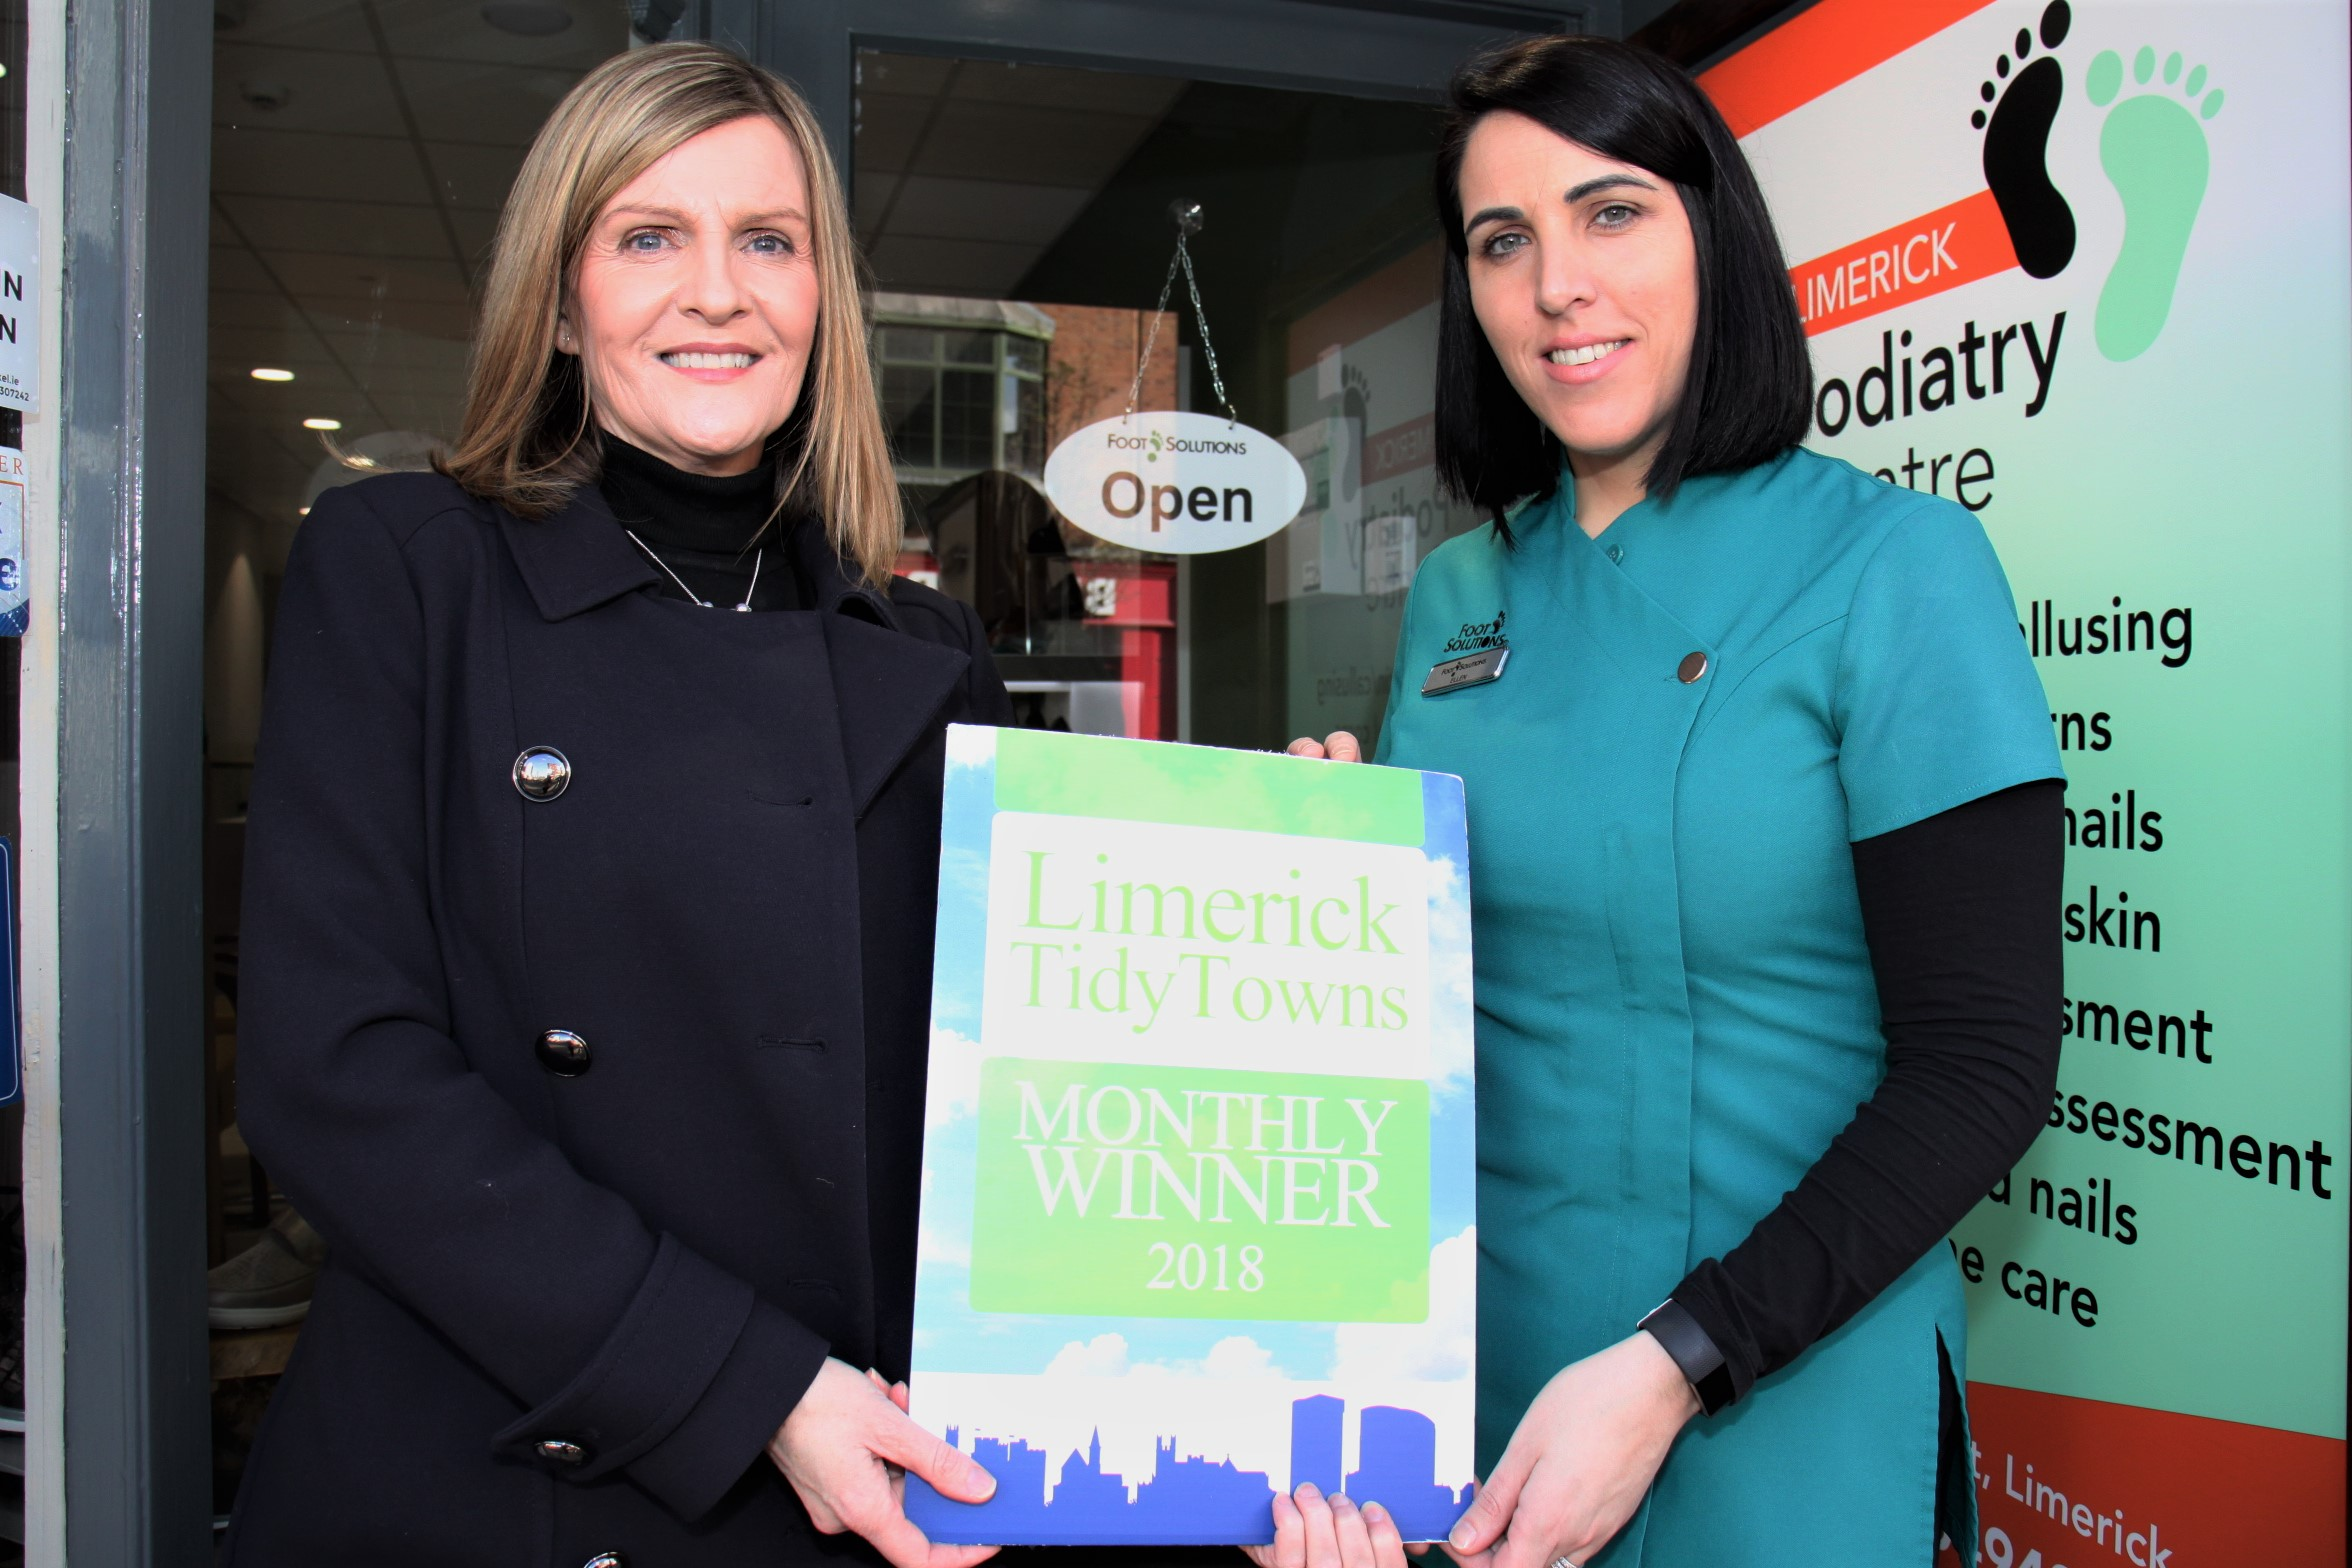 Tidy Towns February 2018 award